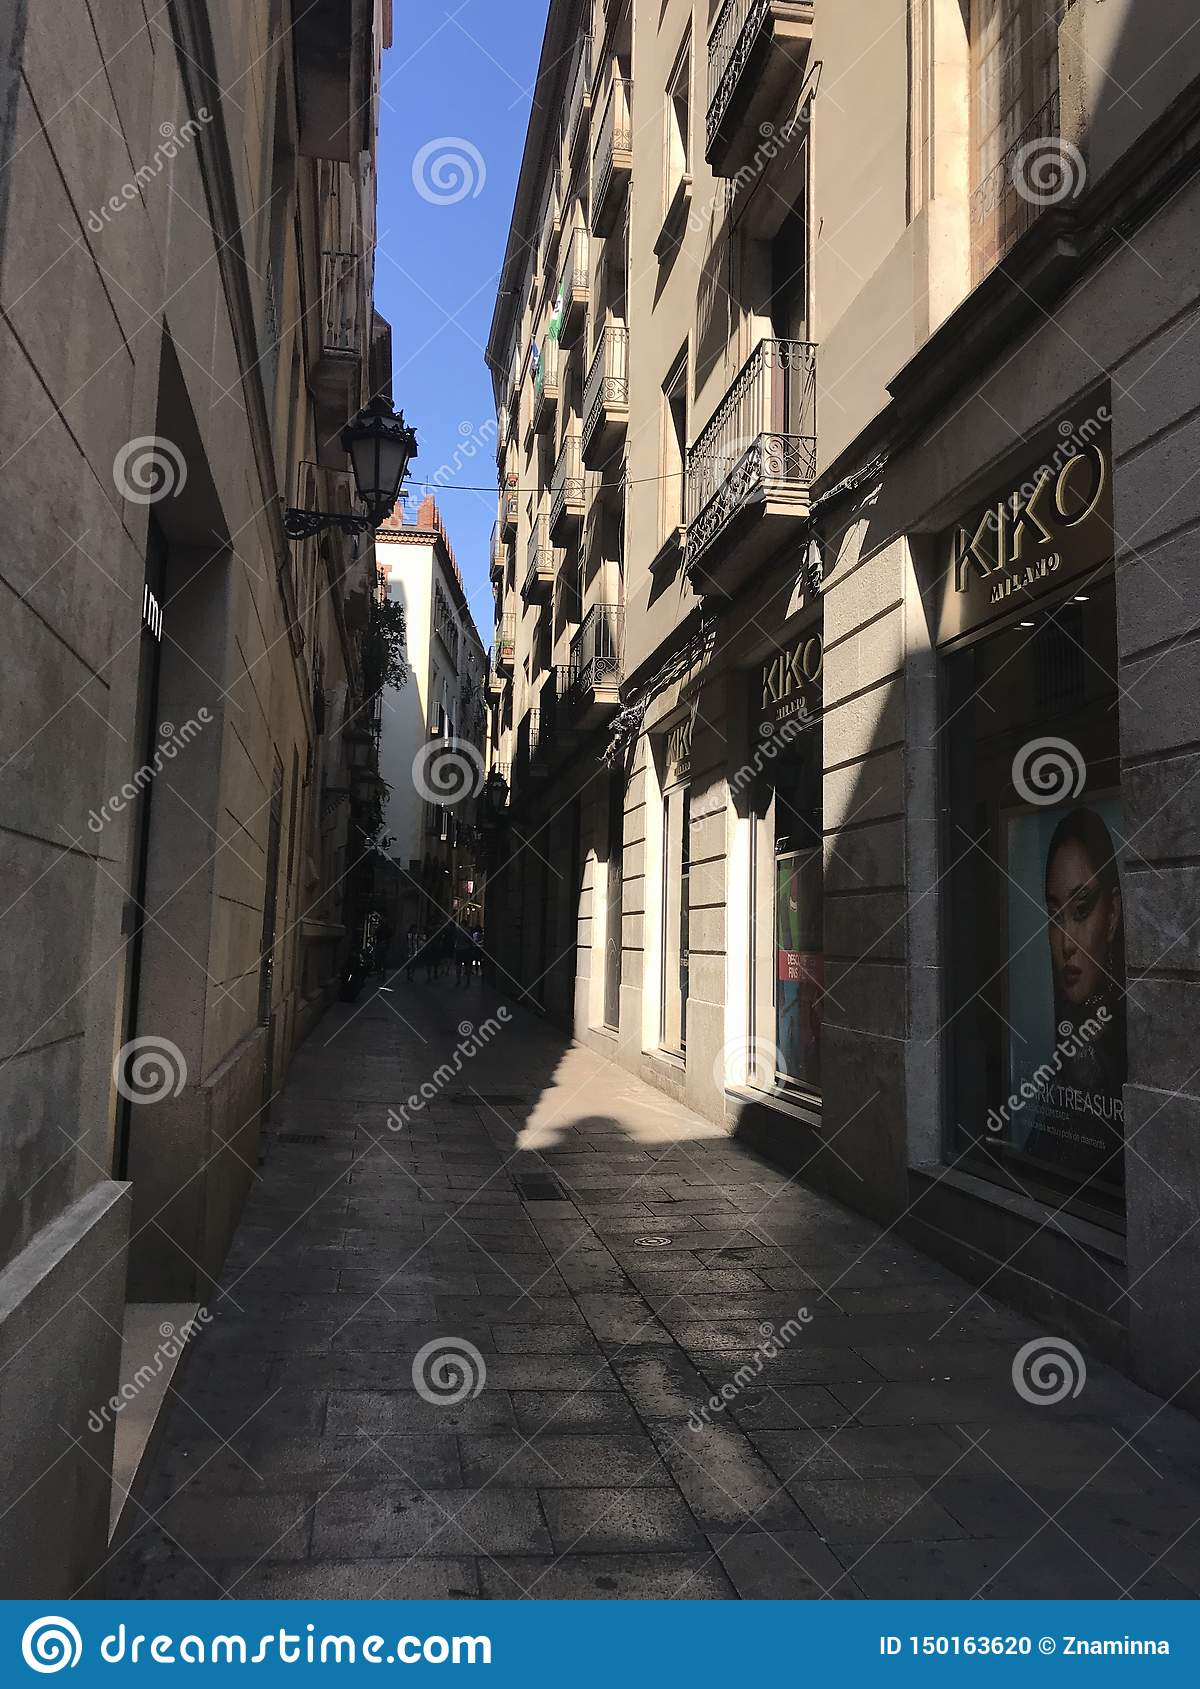 The narrow streets of the hot summer of Barcelona,Spain, Europe,